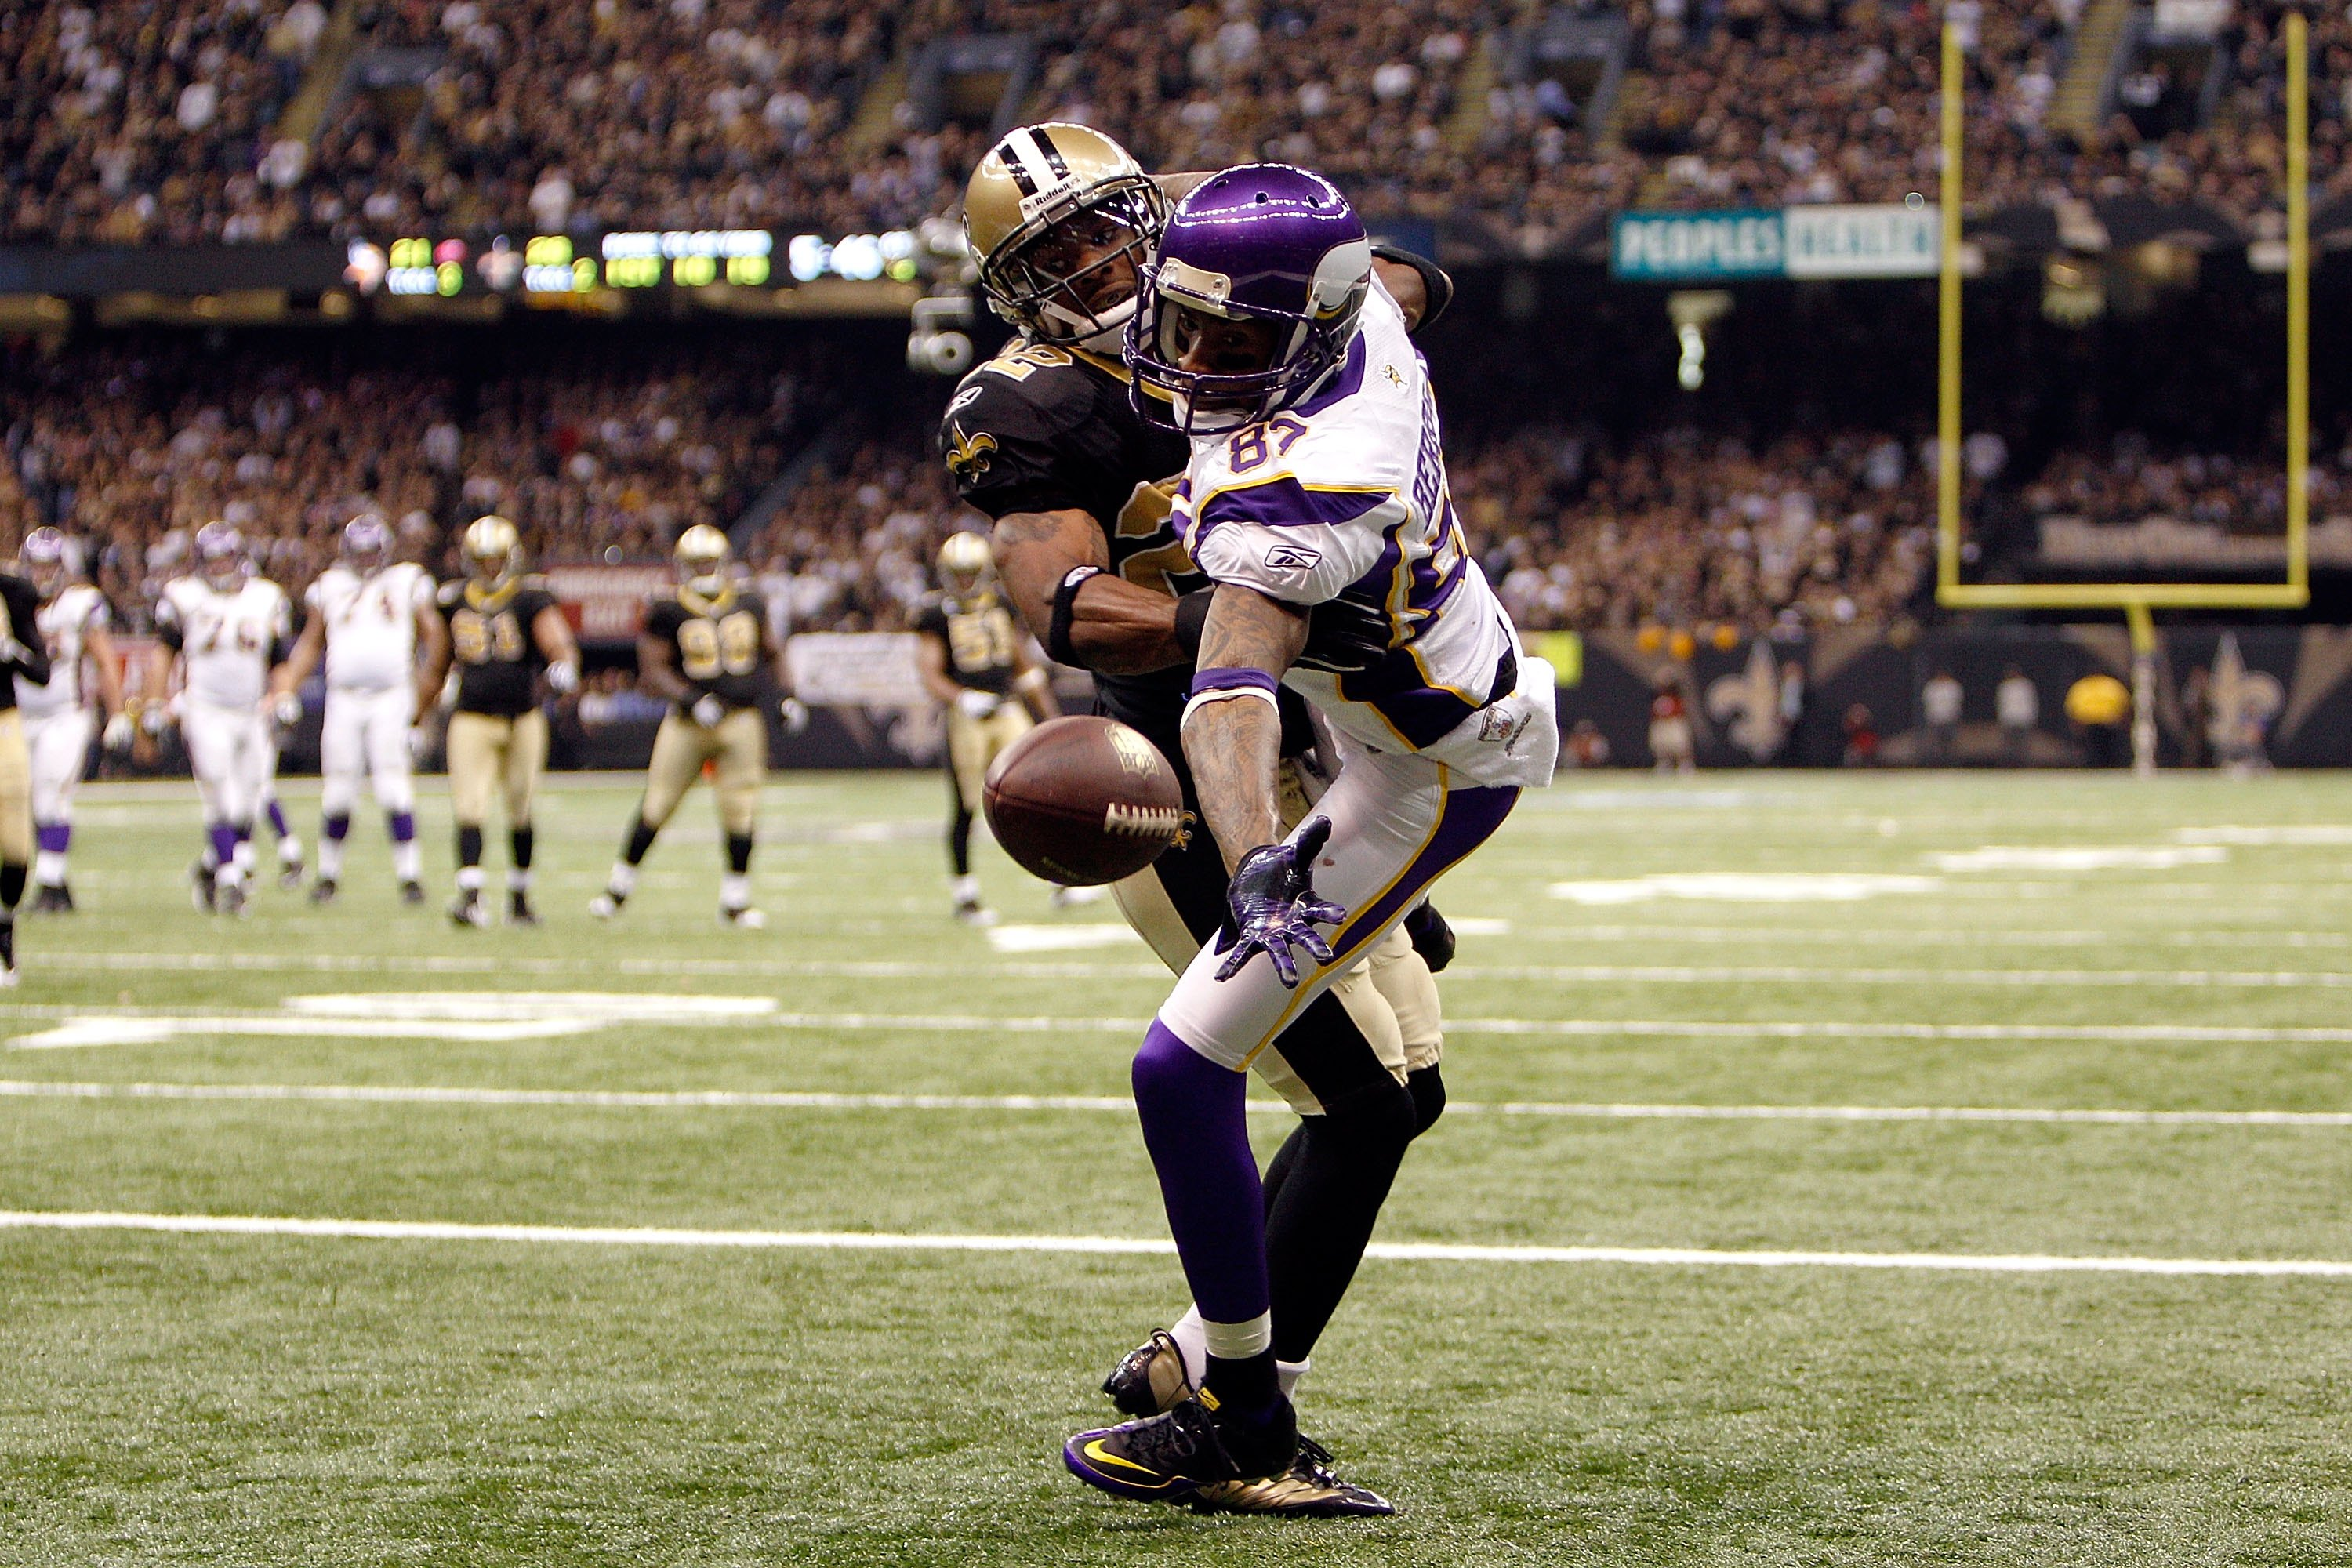 NEW ORLEANS - JANUARY 24:  Bernard Berrian #87 of  the Minnesota Vikings can't make the reception in the end zone but drew a pass interference penalty against Tracy Porter #22 of the New Orleans Saints during the NFC Championship Game at the Louisiana Sup